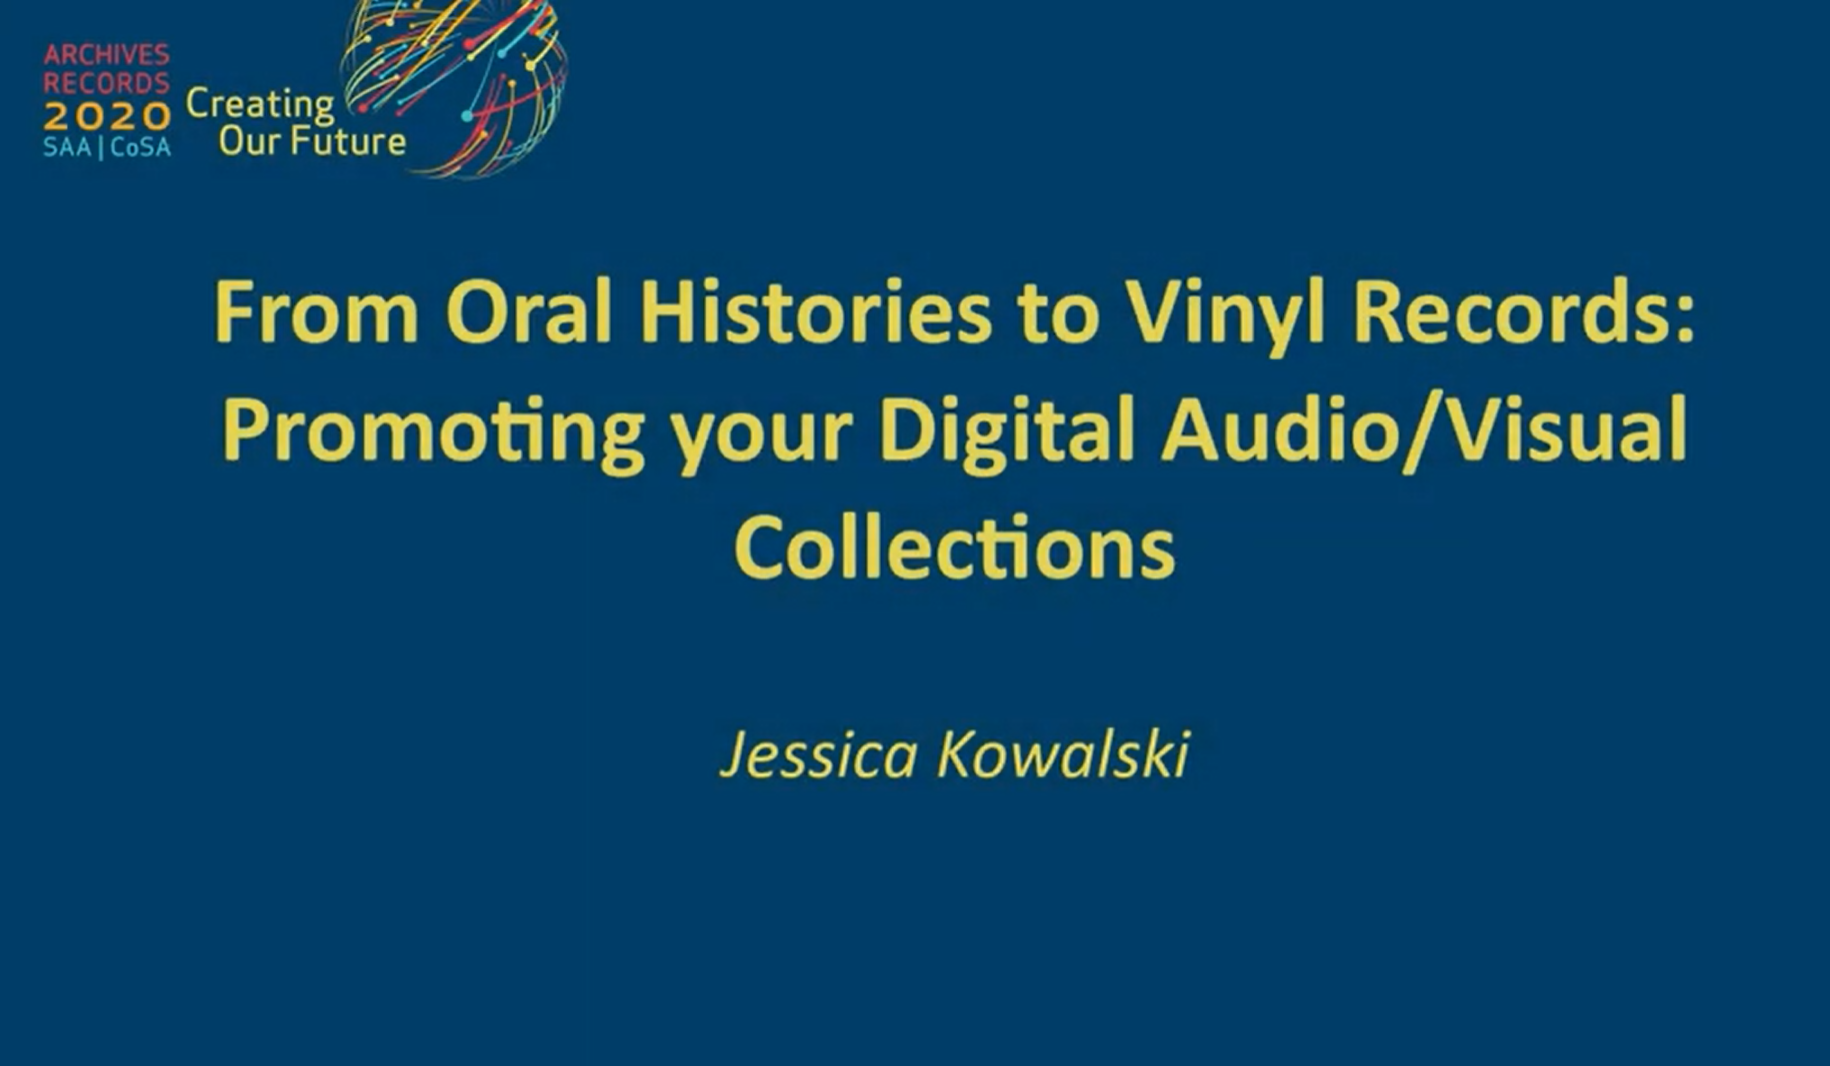 Watch - From Oral Histories to Vinyl Records: Promoting your Digital Audio/Visual Collections